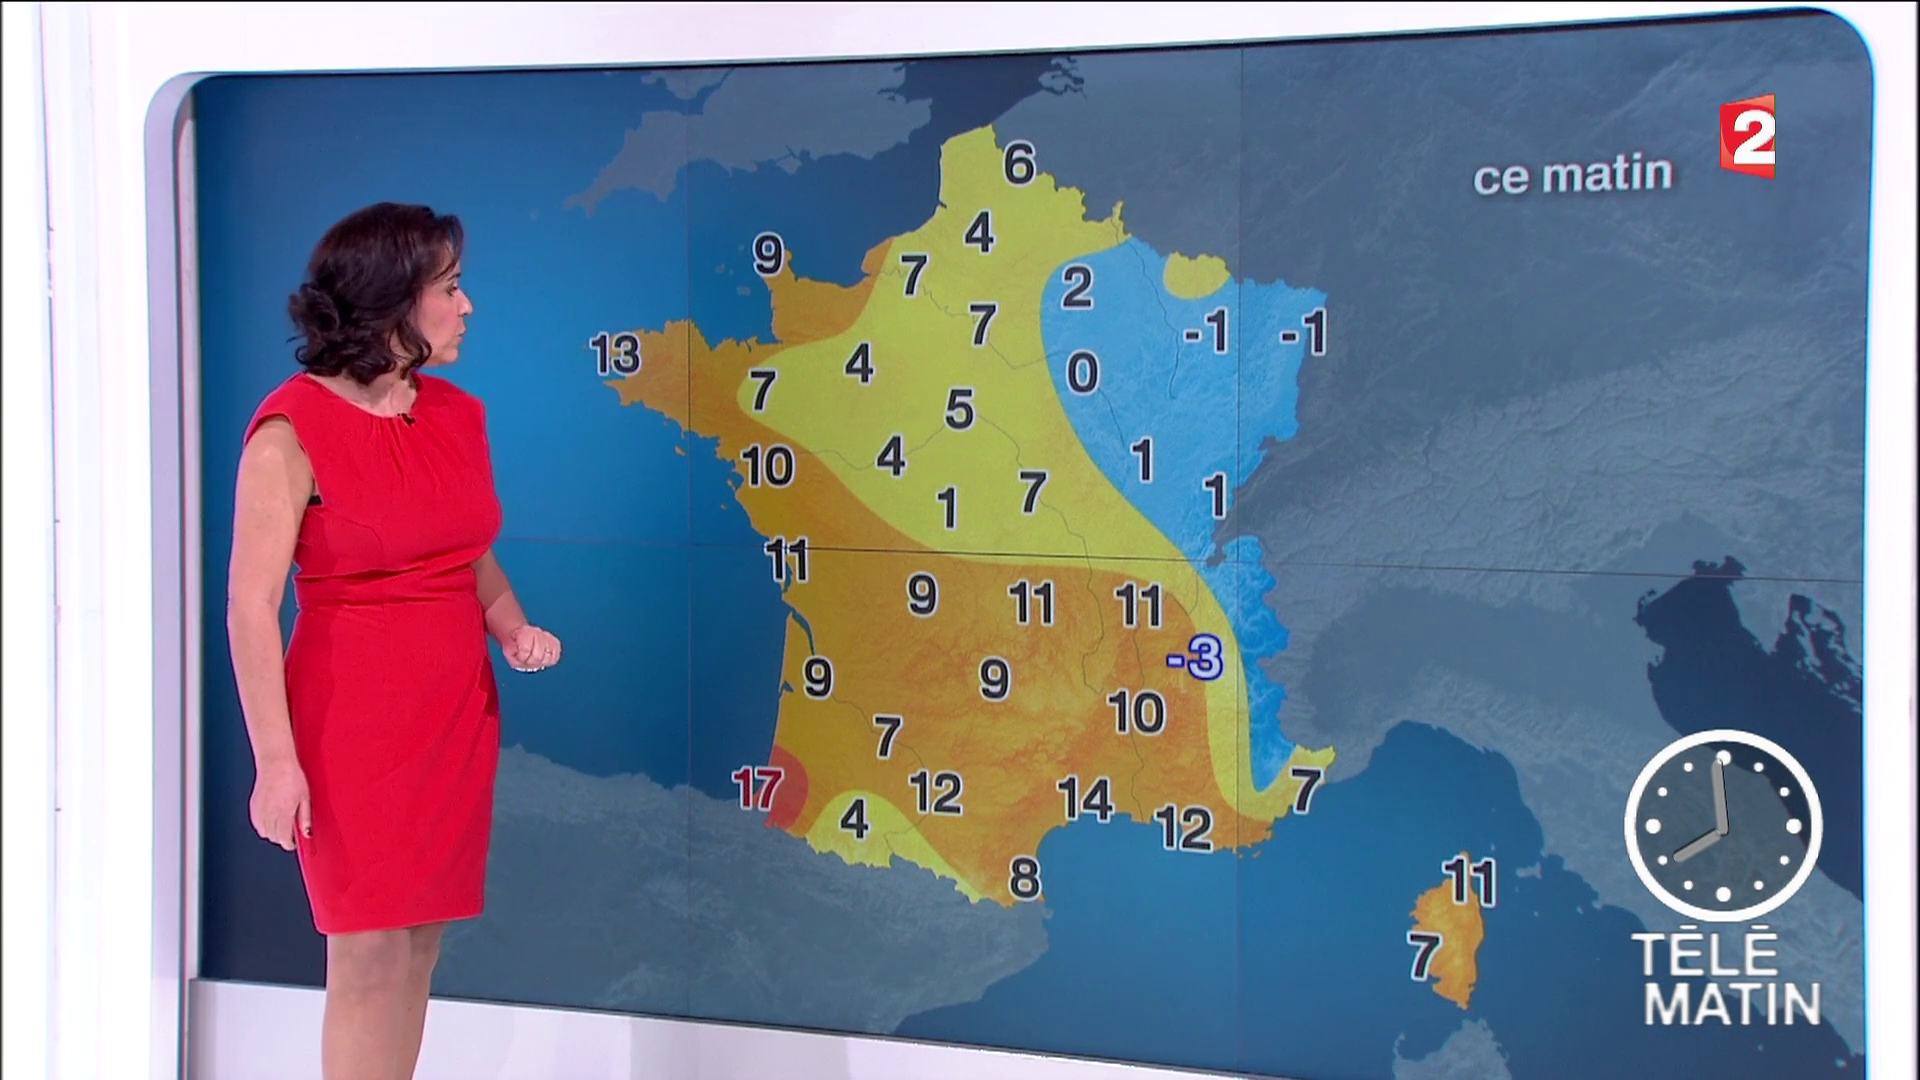 patriciacharbonnier07.2015_12_28_meteotelematinFRANCE2